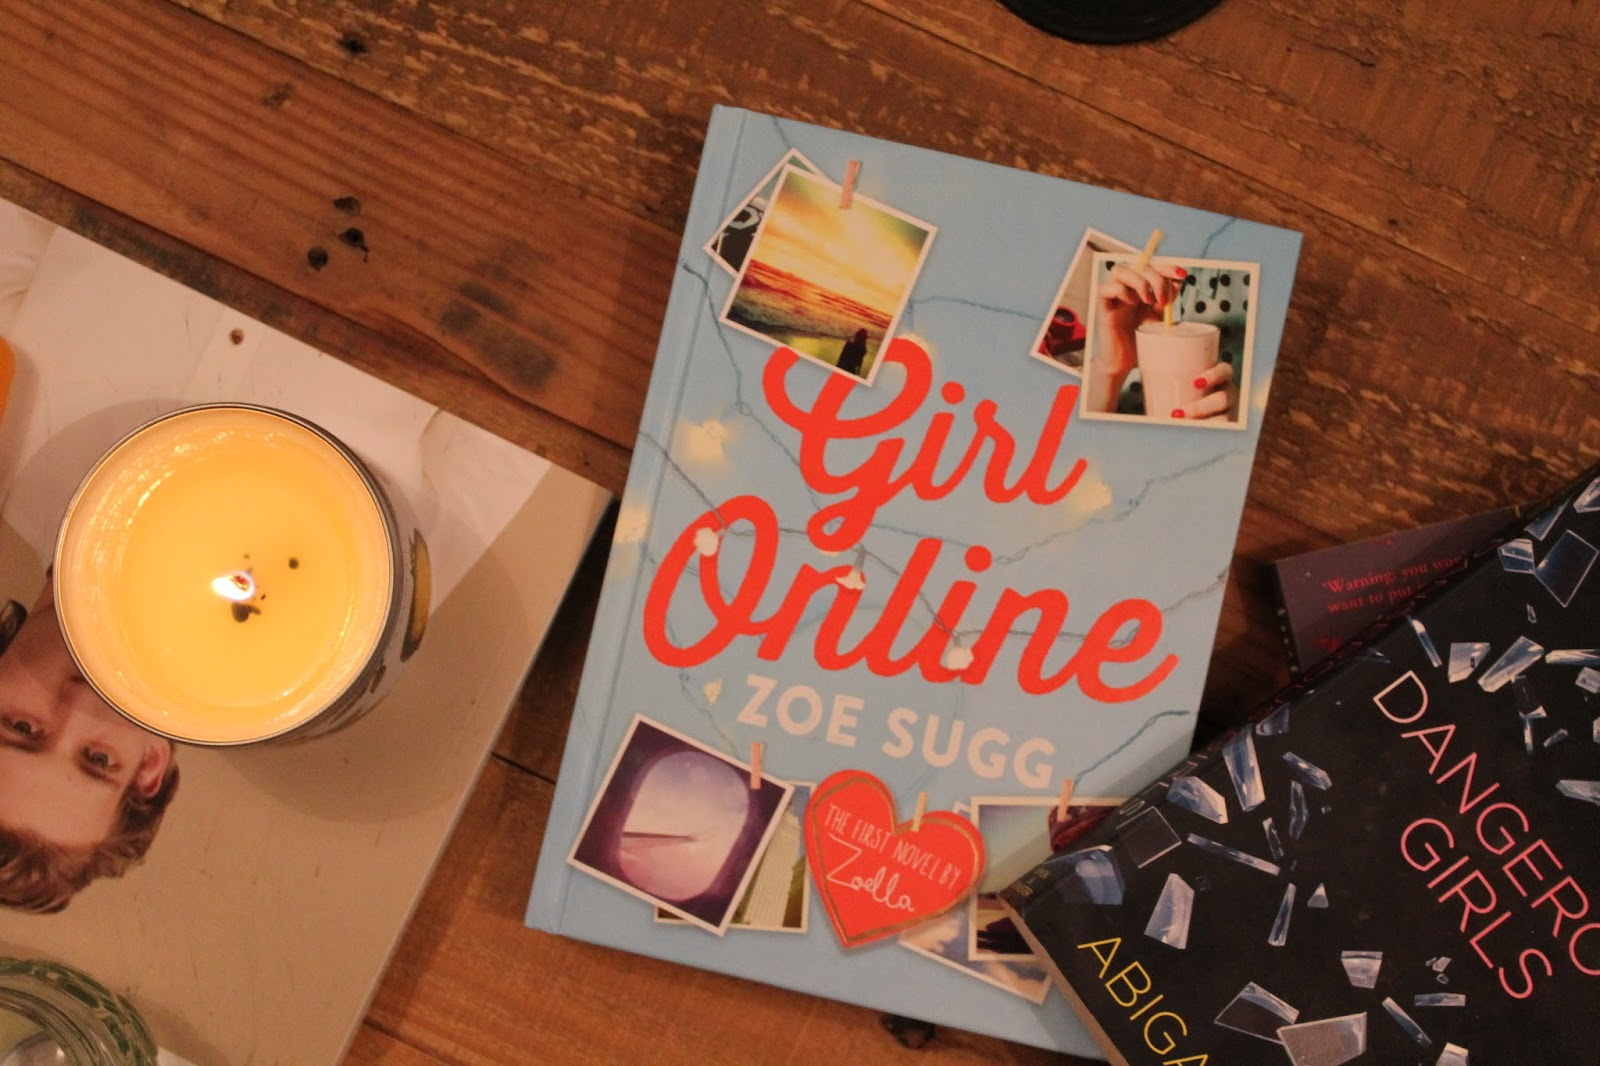 Gingerbread Smiles - Book Review Zoella, Zoe Sugg, Girl Online